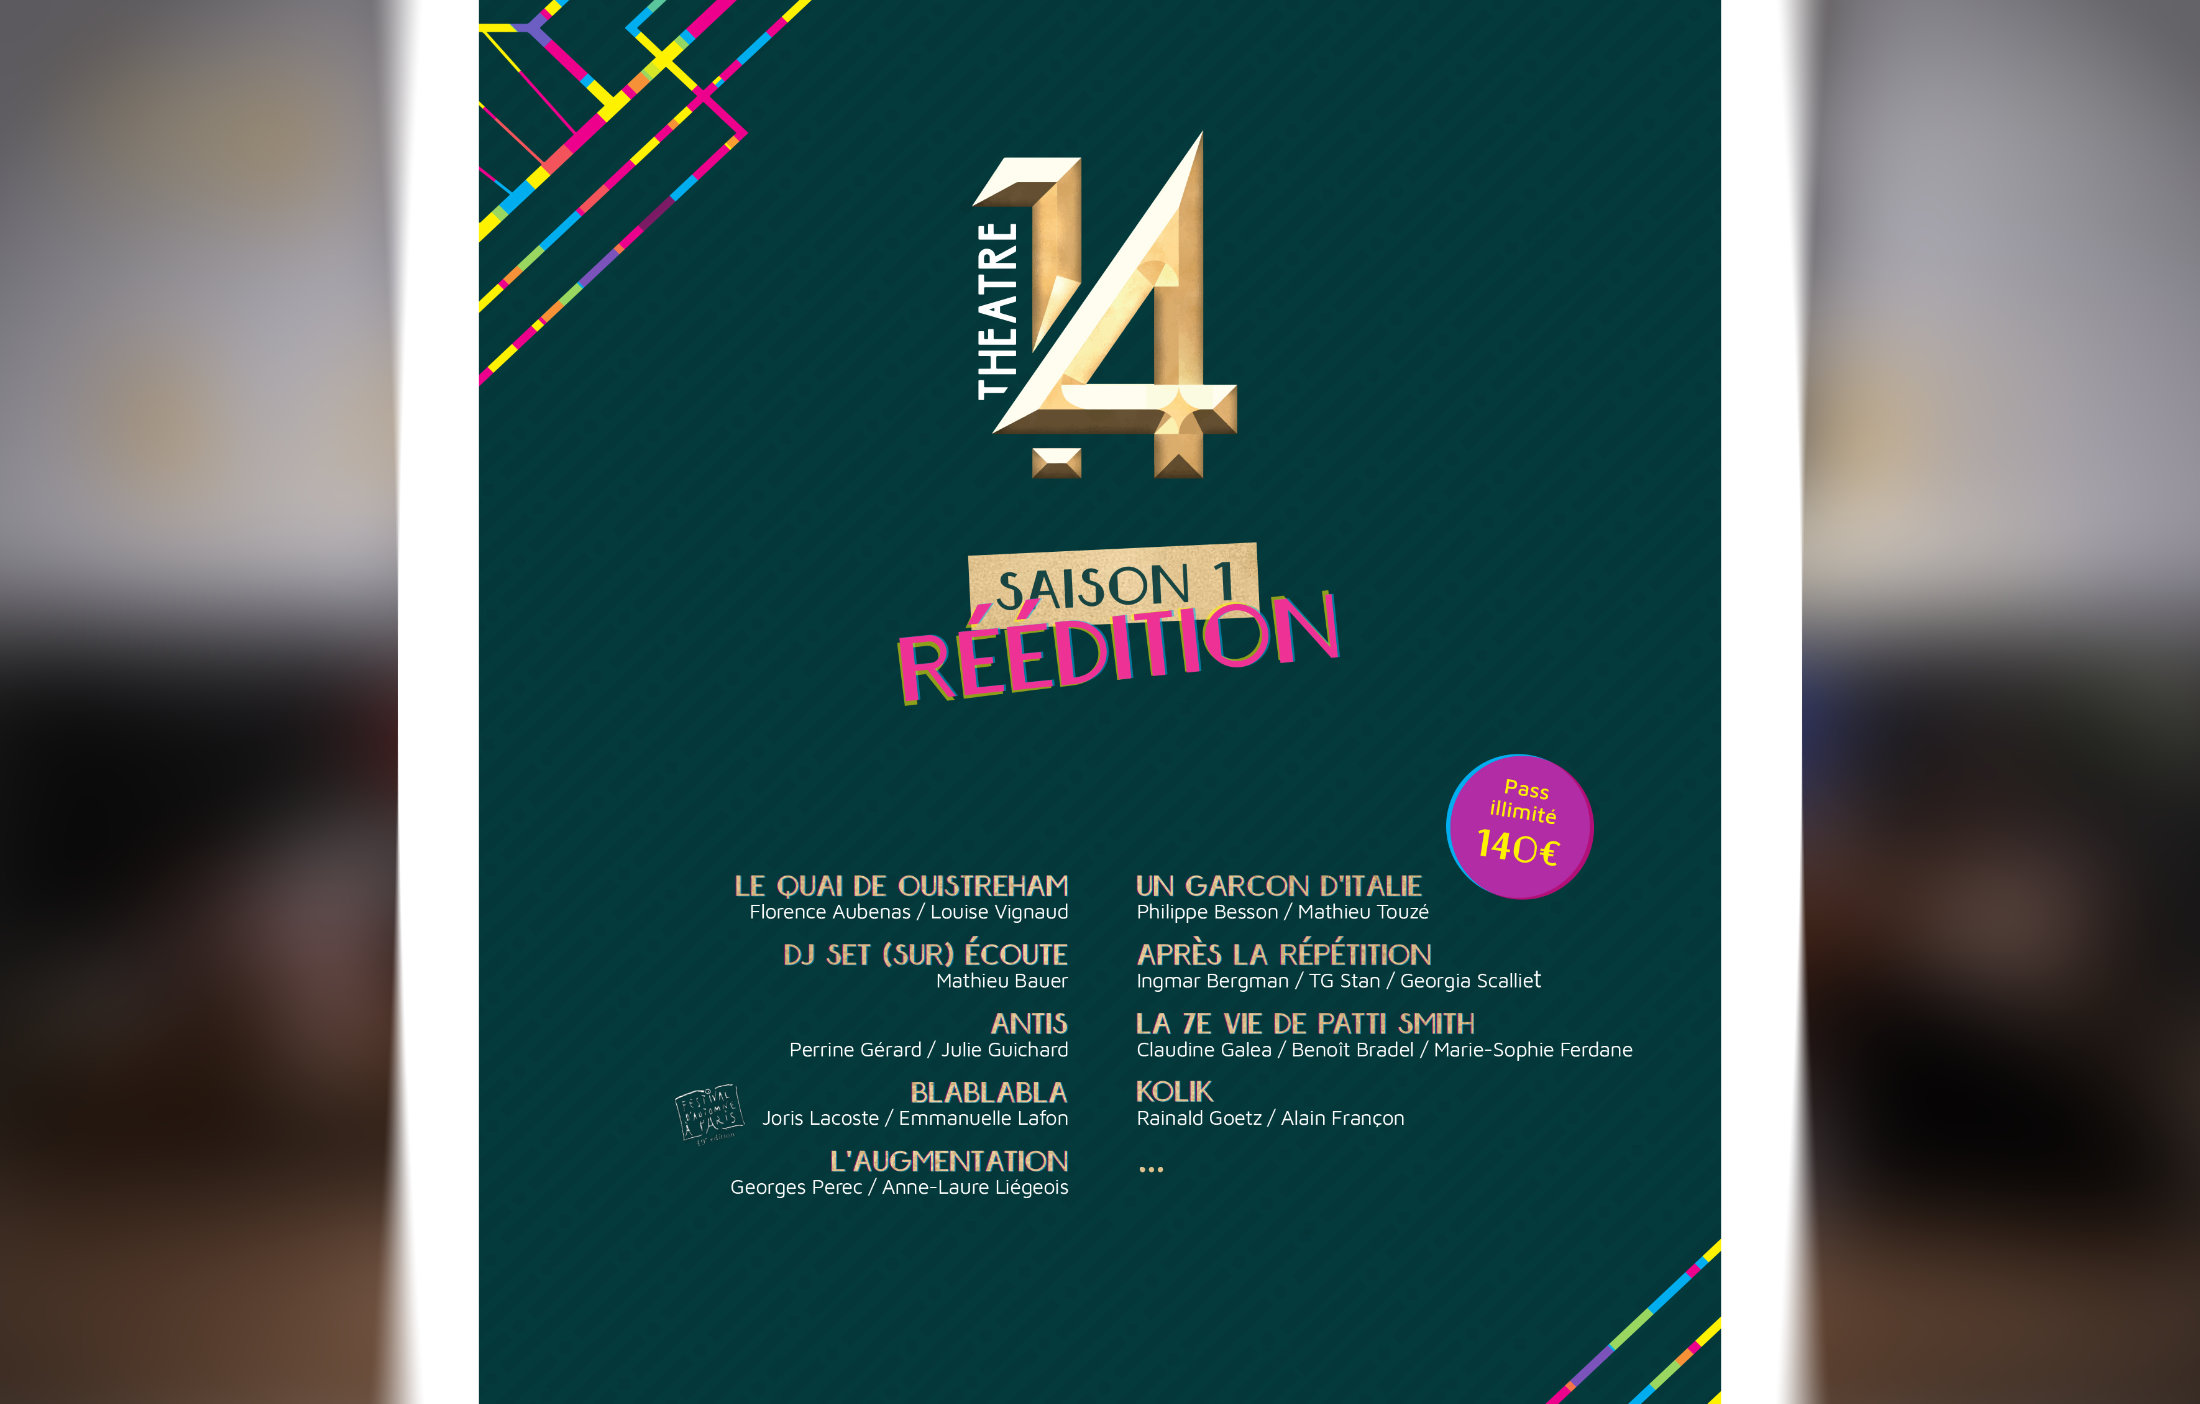 Saison-1-Reedition-2@2x